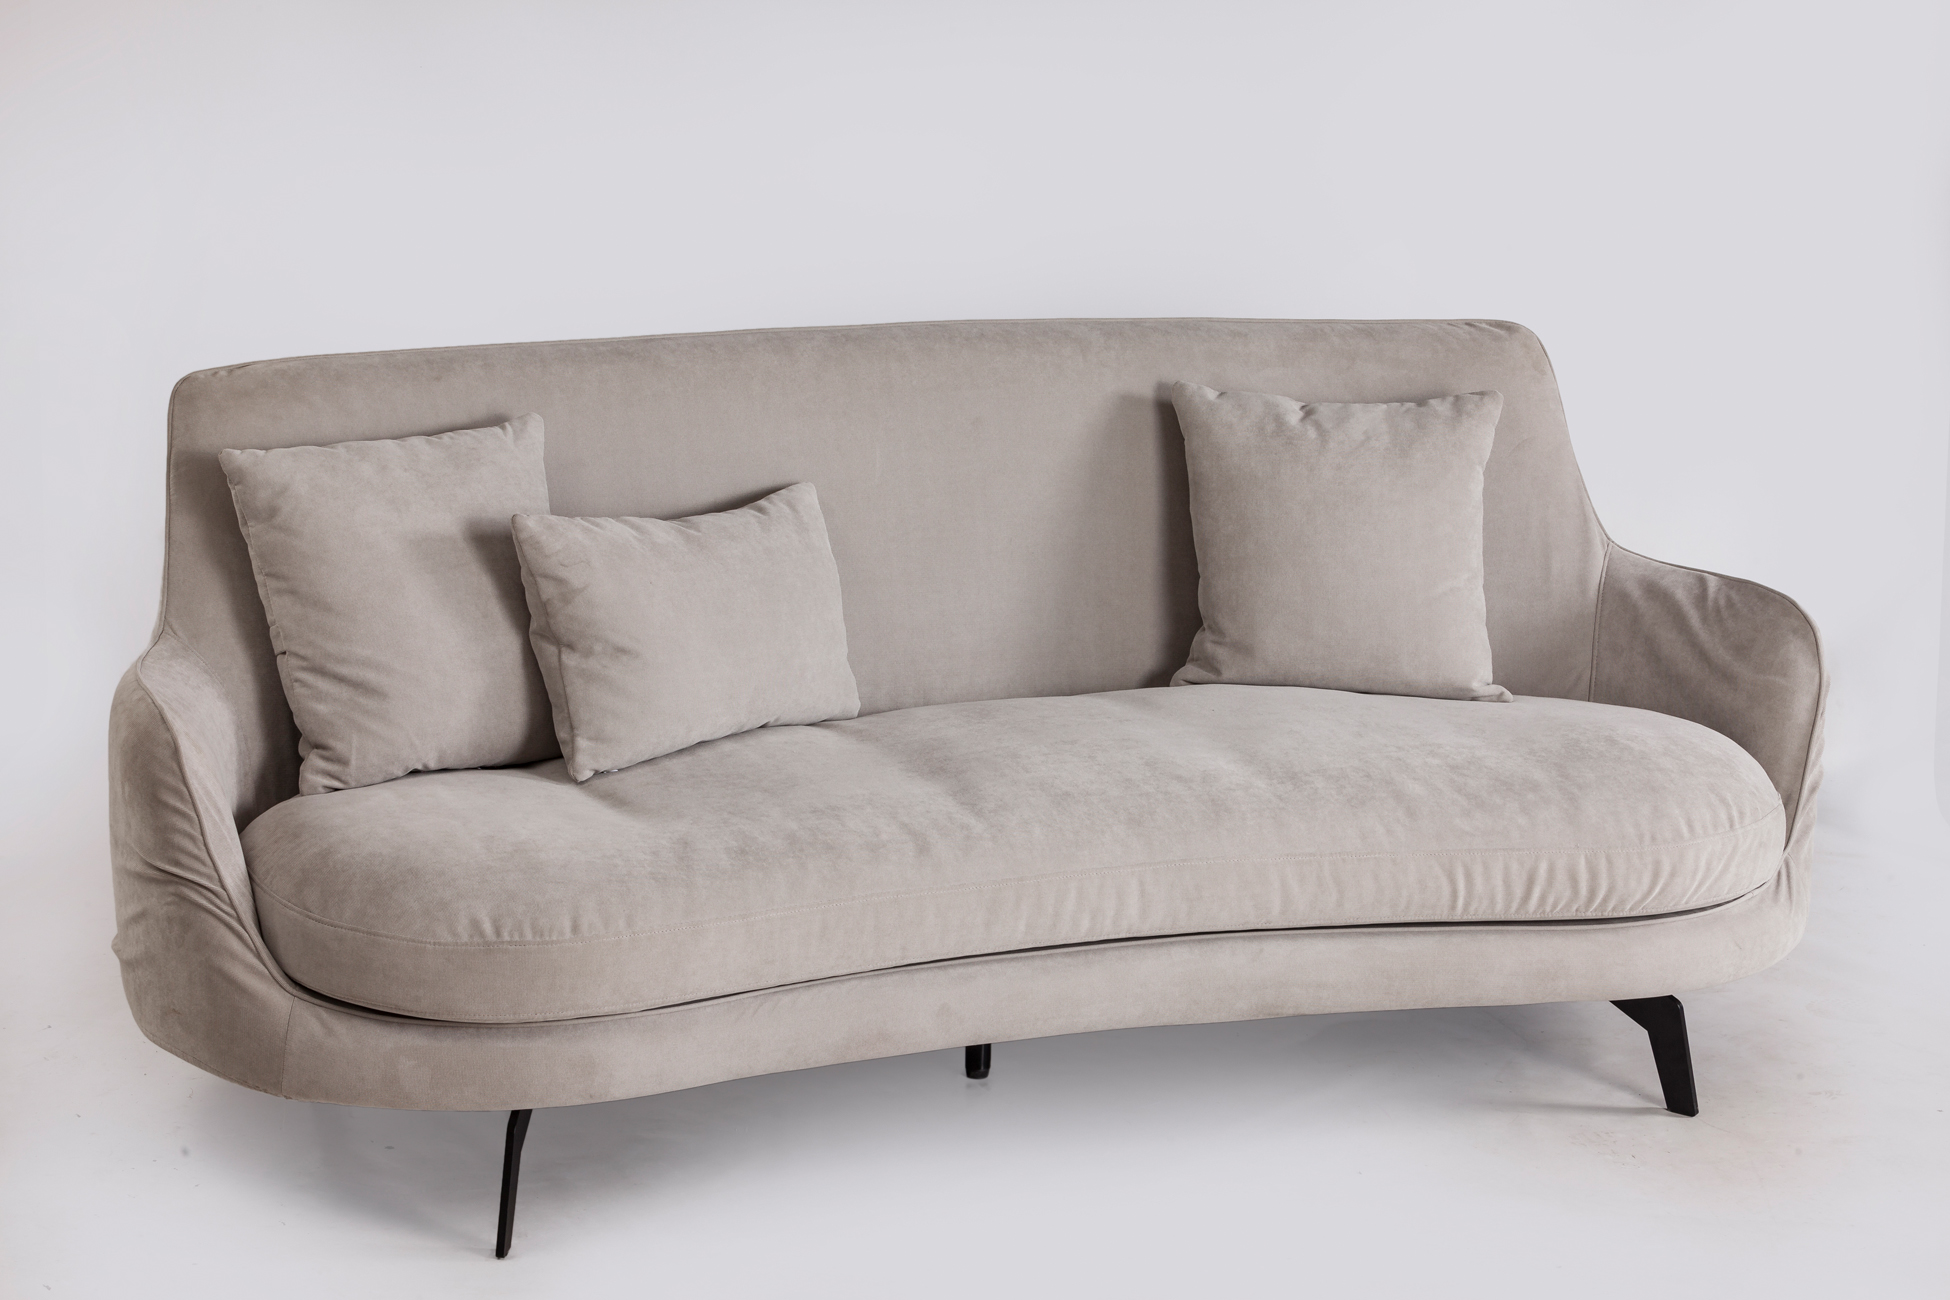 cushions for 3 seater wooden sofa how to remove ballpoint ink from leather ha683 seats united פיק אפ קלאסיגן